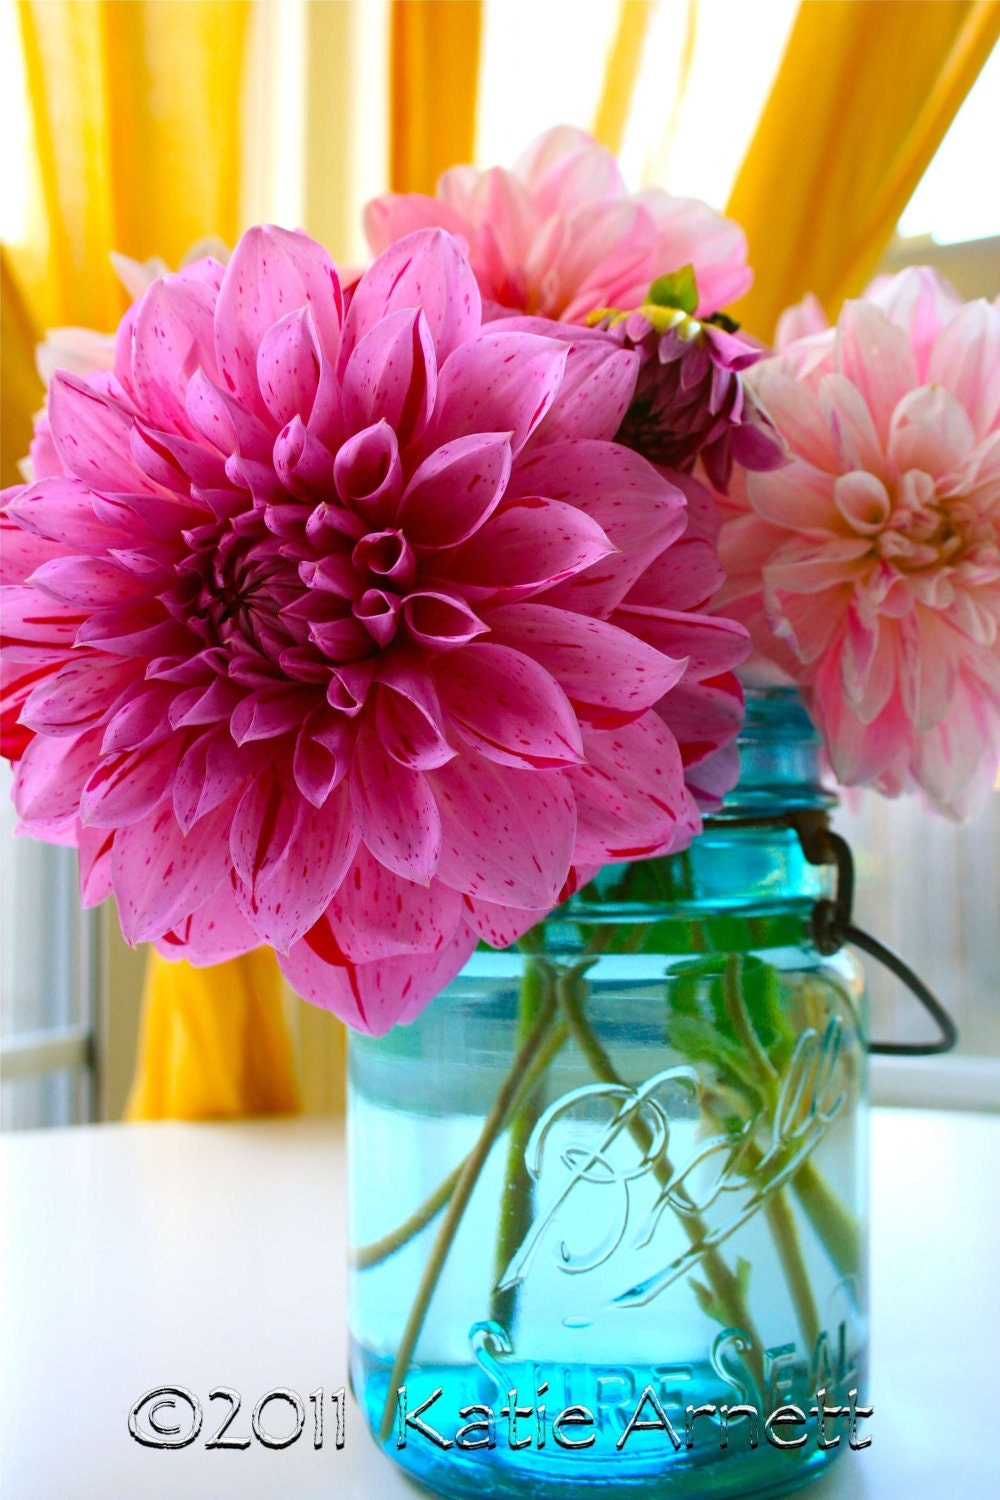 Pink dahlia (With images) | Flowers, Dahlia, Plants |Hot Pink Dahlia Flowers